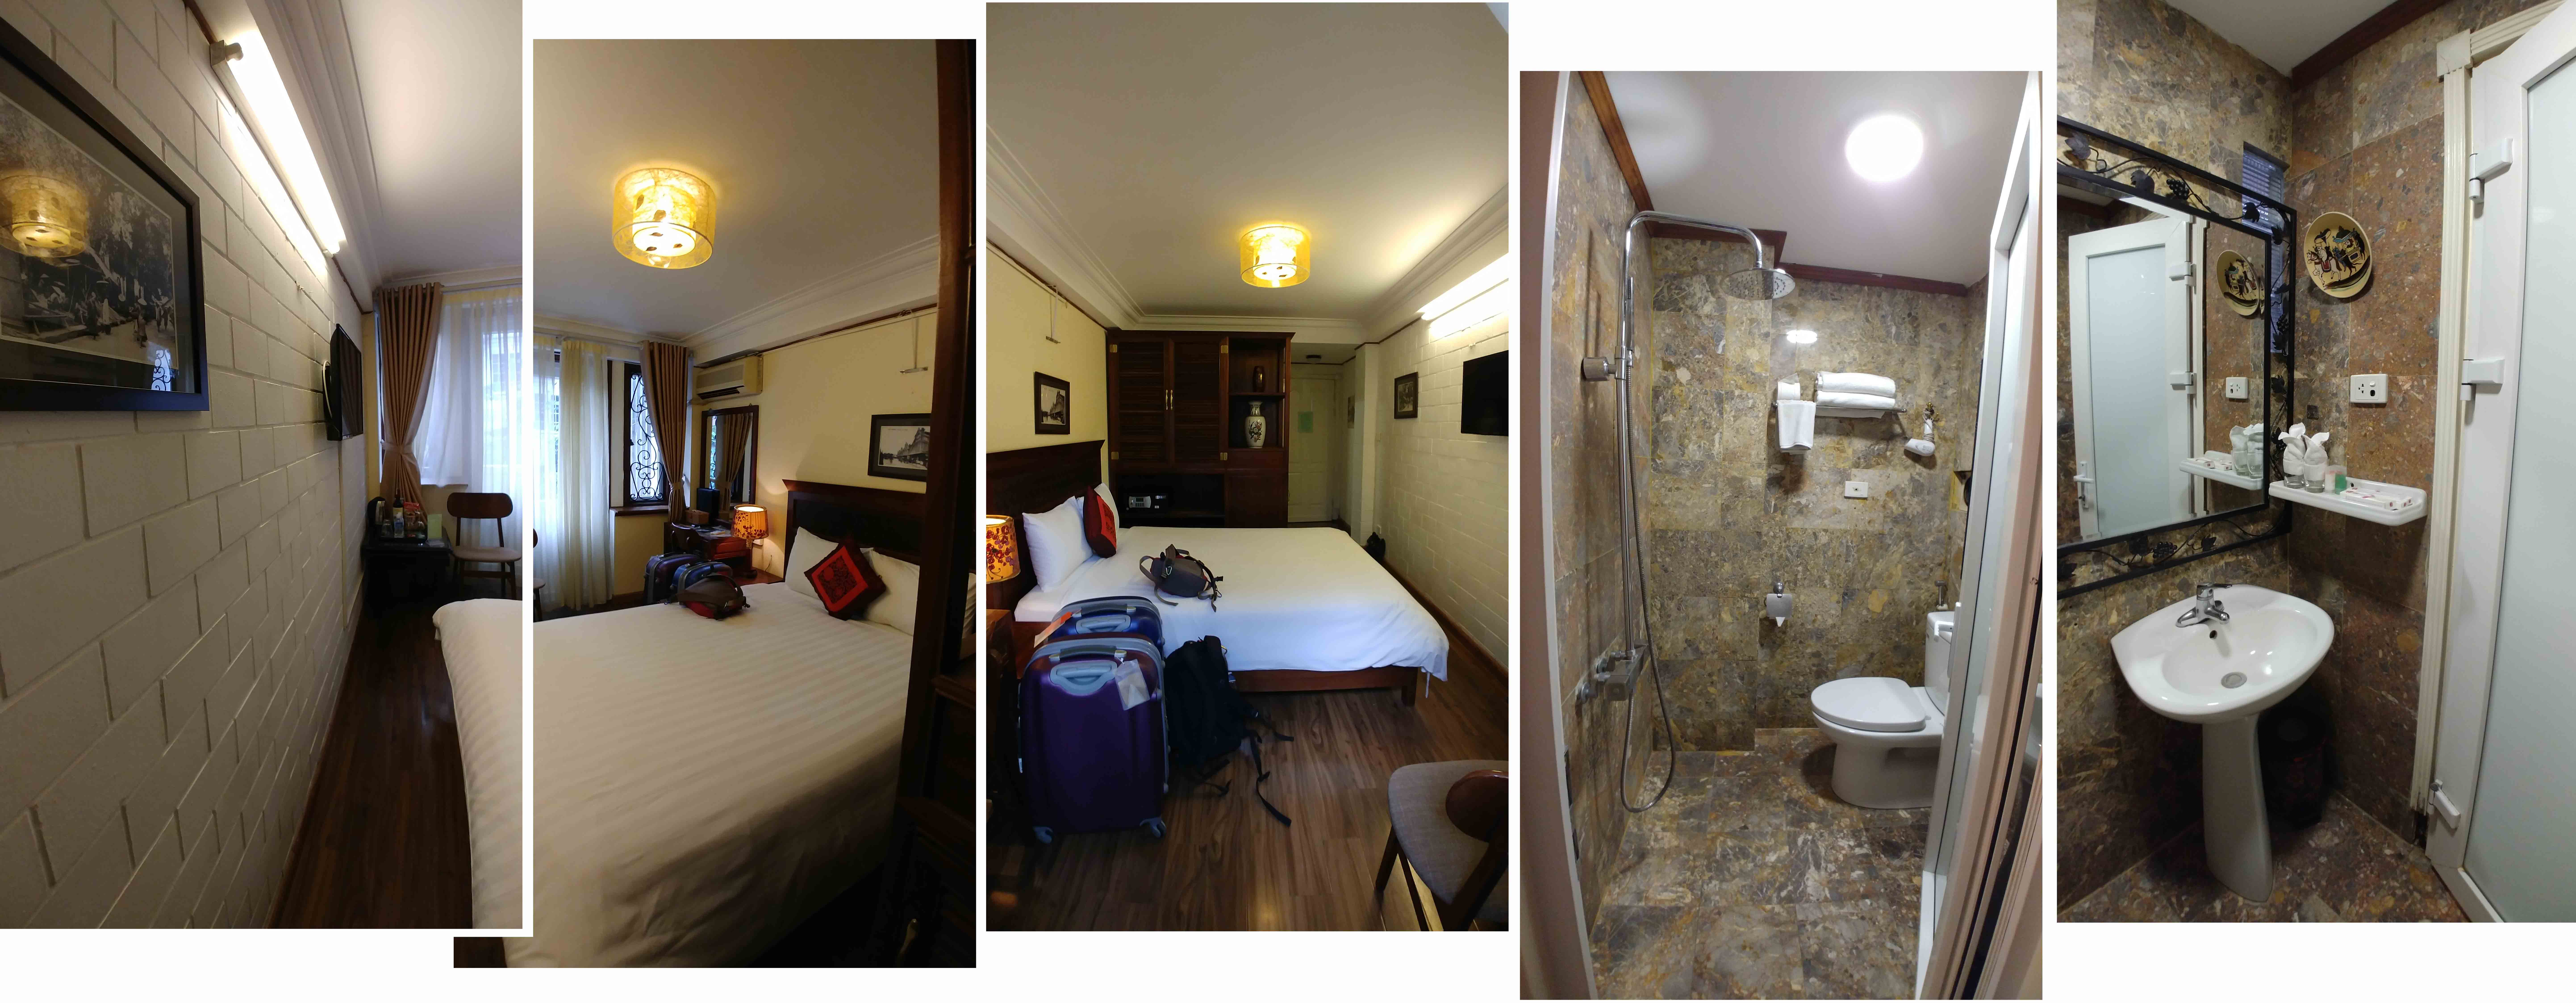 Our double room at Classic Street Hotel